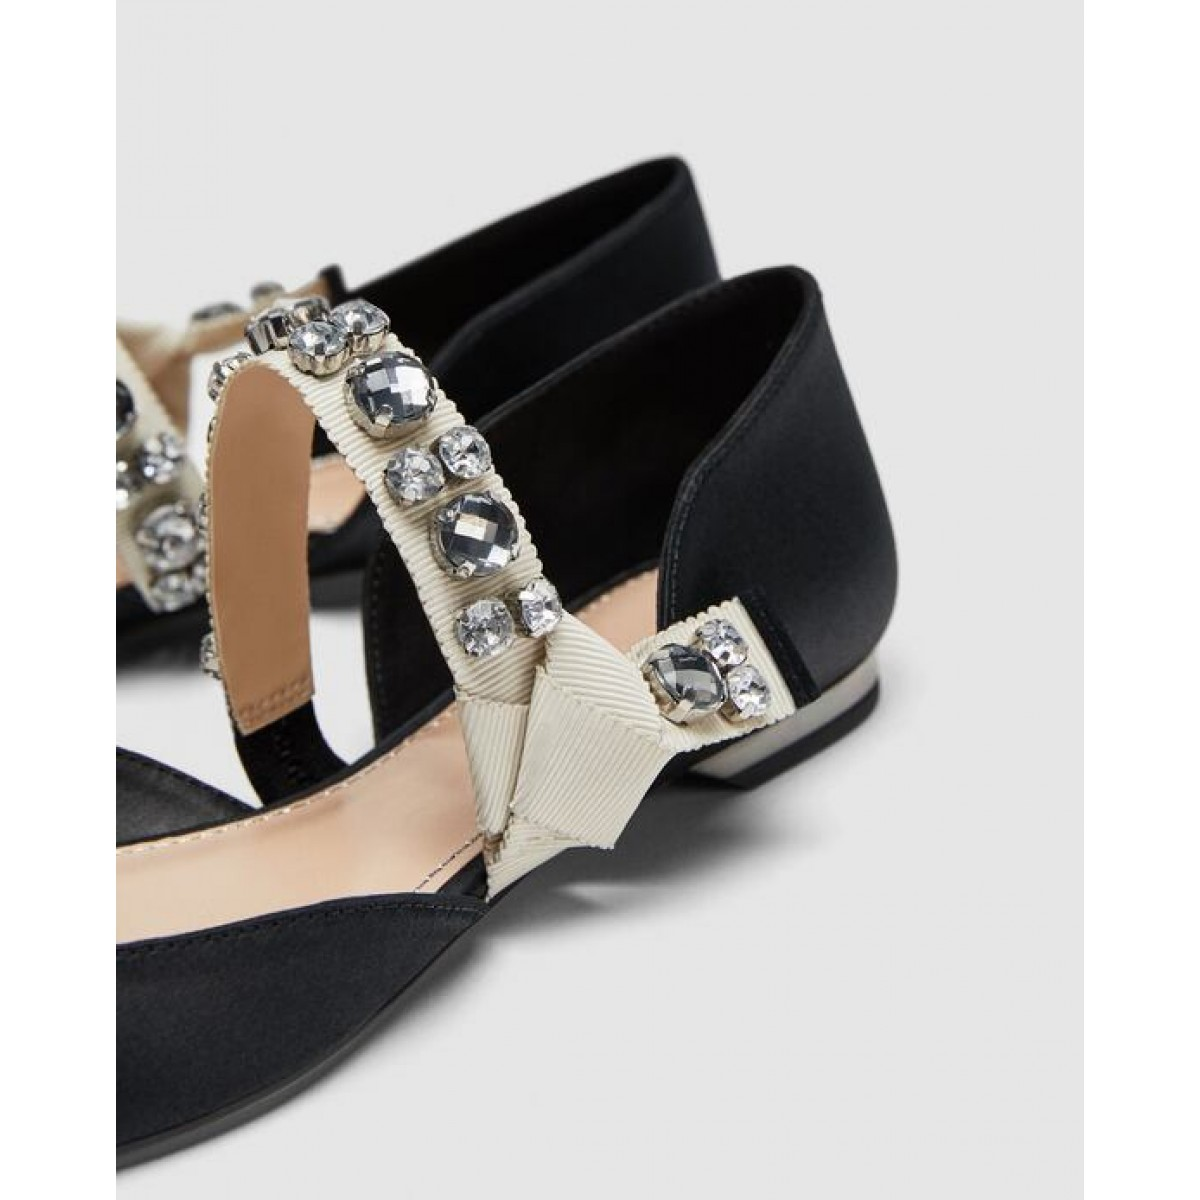 Zara Ballerinas (Beaded)